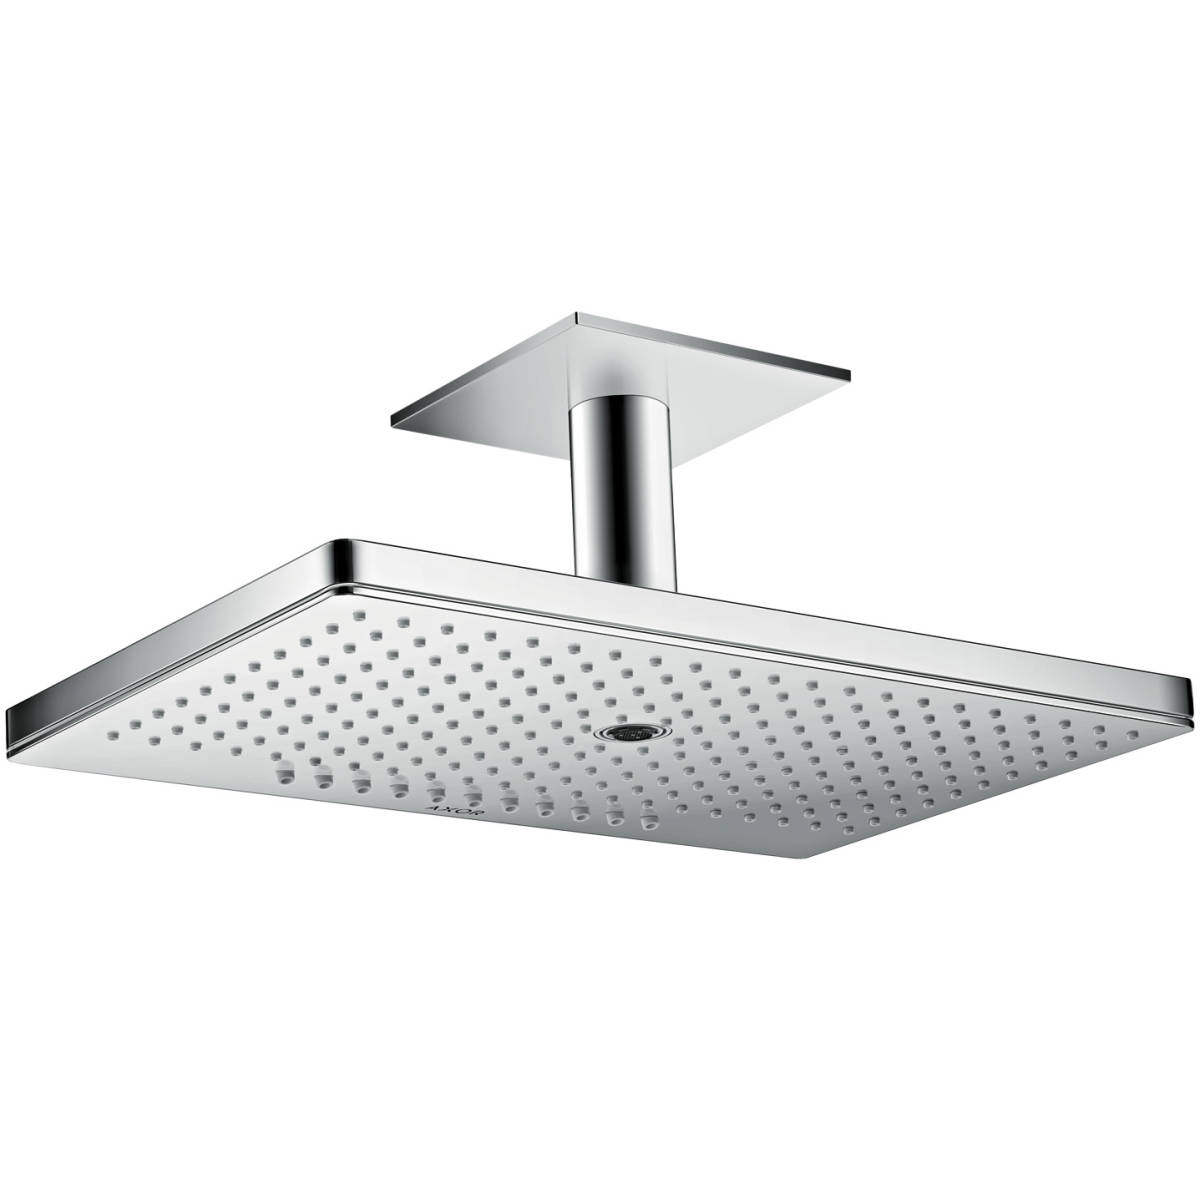 Overhead shower 460/300 3jet with ceiling connection, Chrome, 35281000